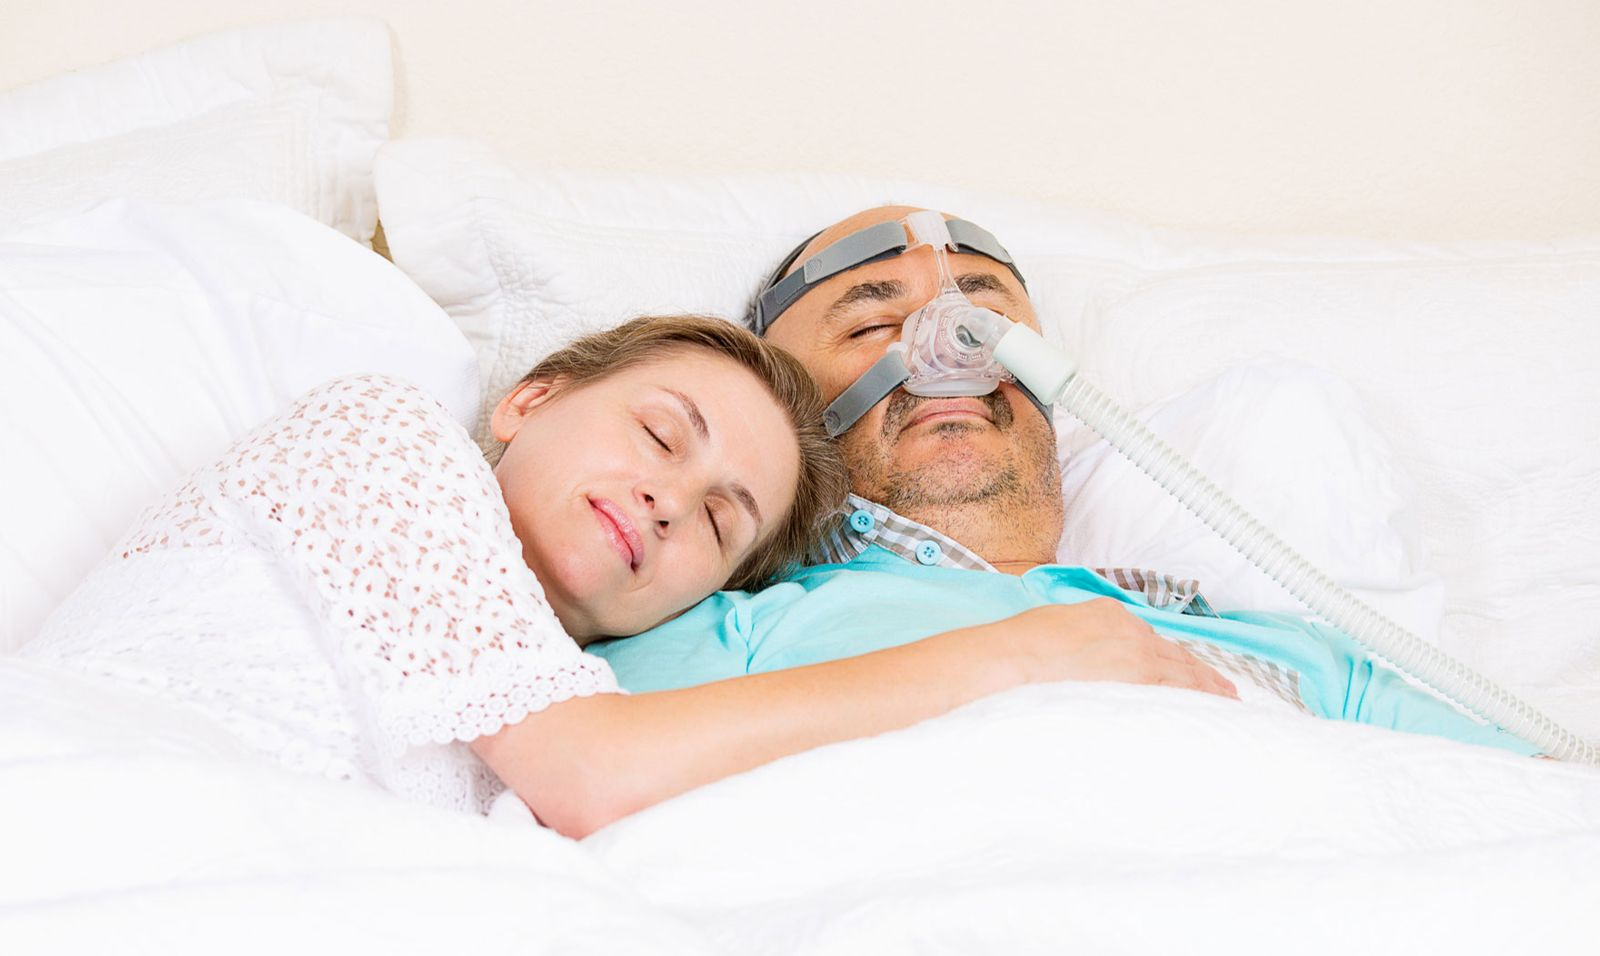 CPAP-Therapie